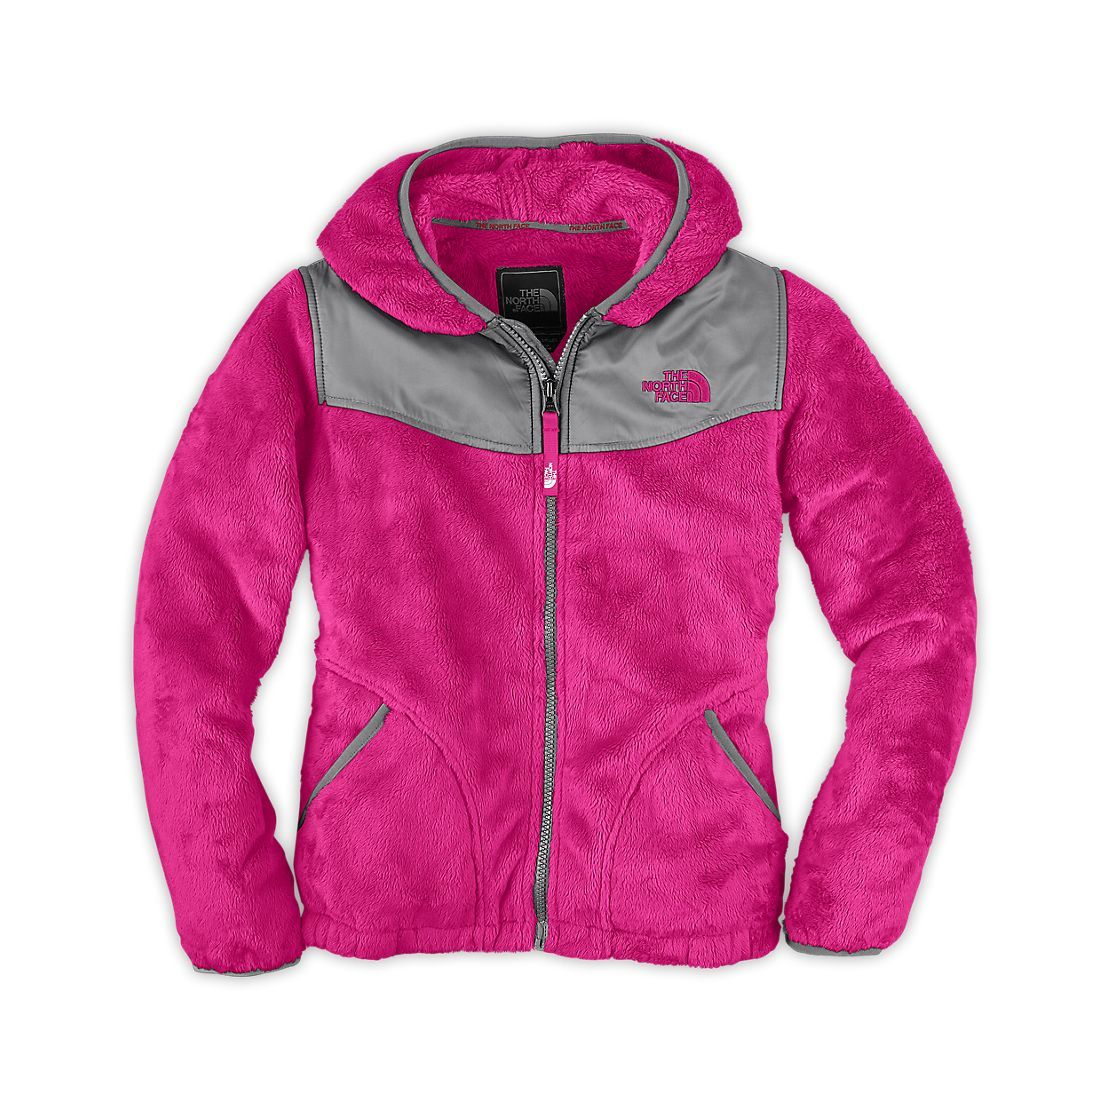 Girls Suave Oso Hoodie Free Shipping The North Face North Face Oso Hoodie Hoodie Girl North Face Girls [ 1110 x 1110 Pixel ]